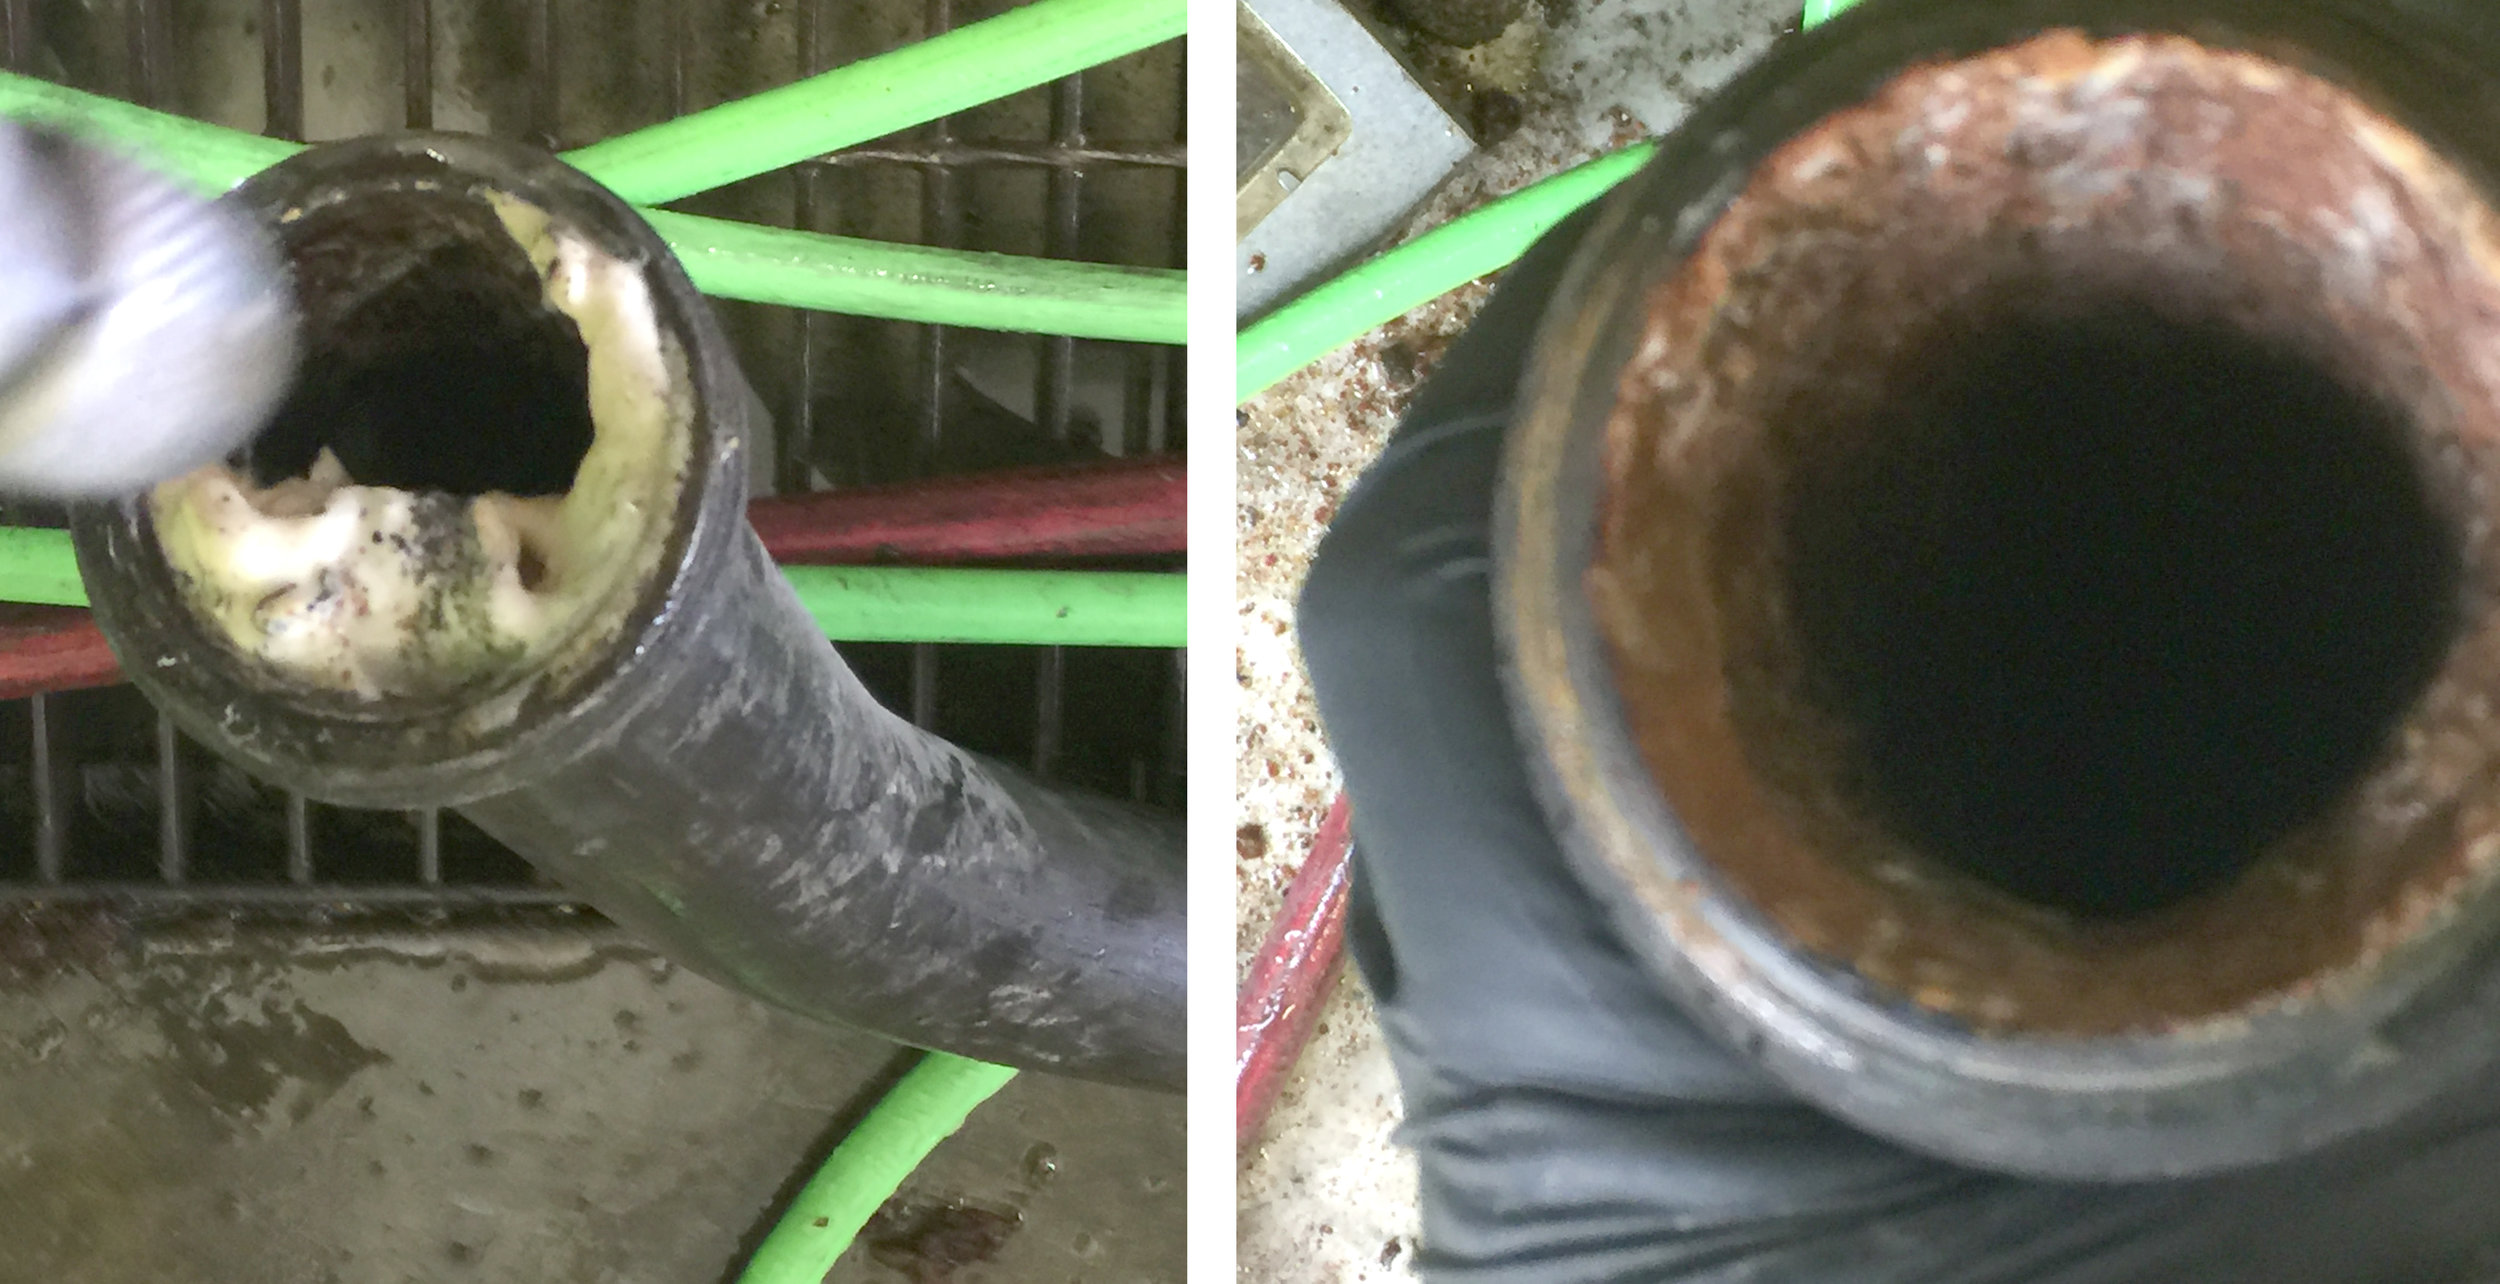 Build-Up in Line                                       Line After Cleaning Service